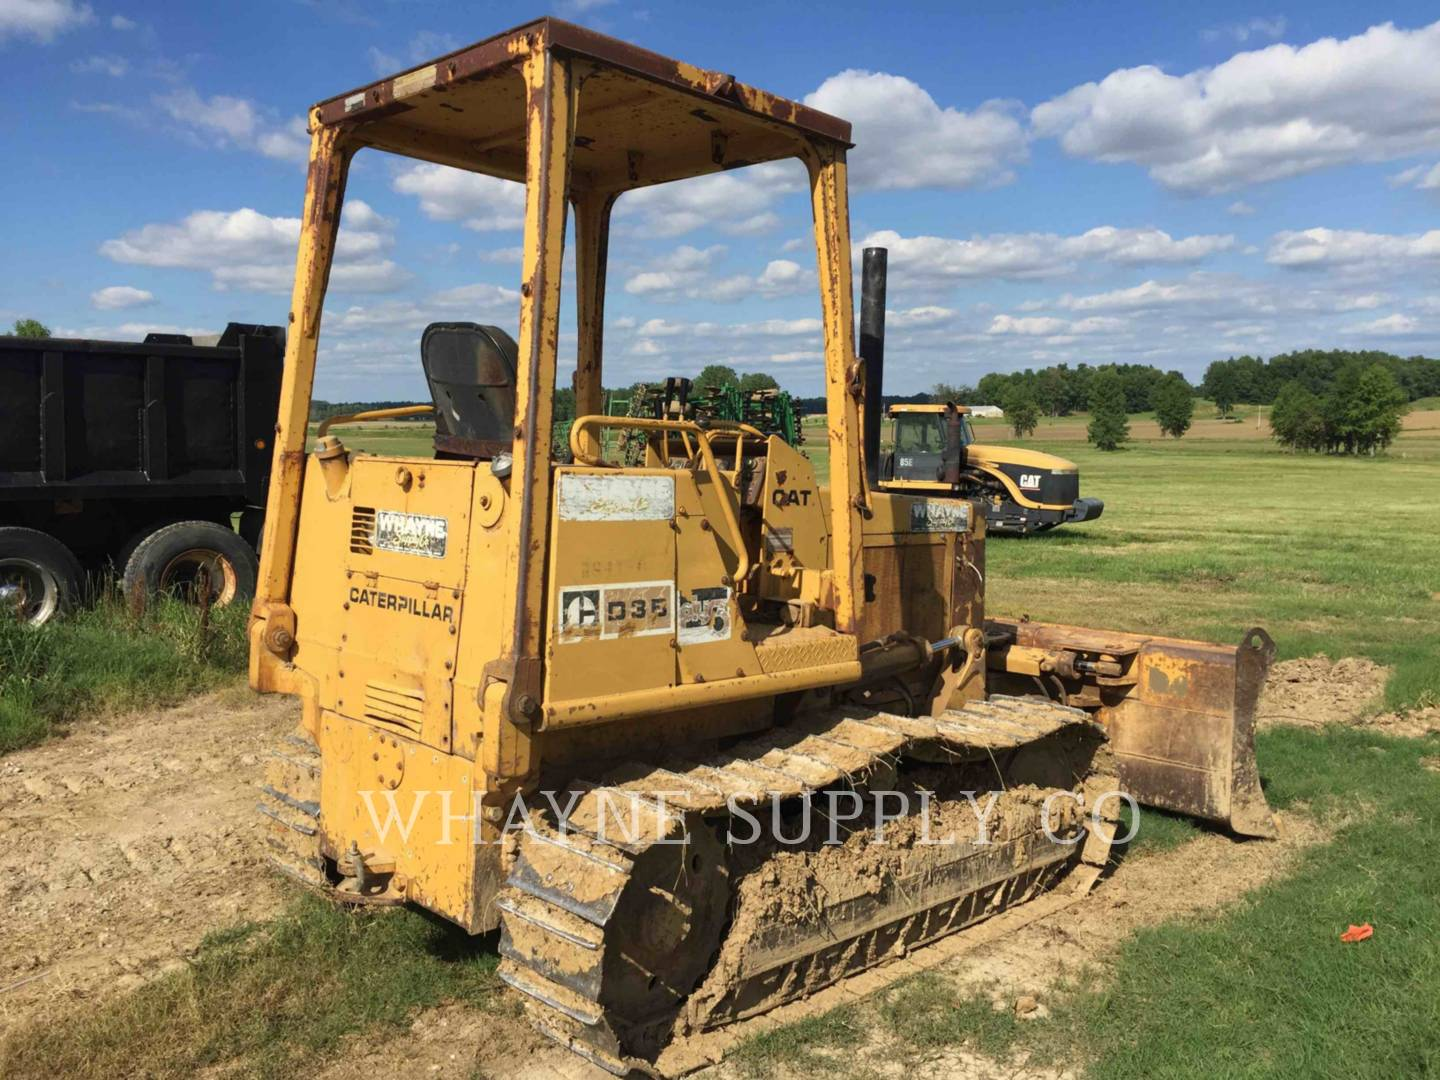 Whayne Walker Cat | Used 1984 Caterpillar D3B for Sale - Whayne